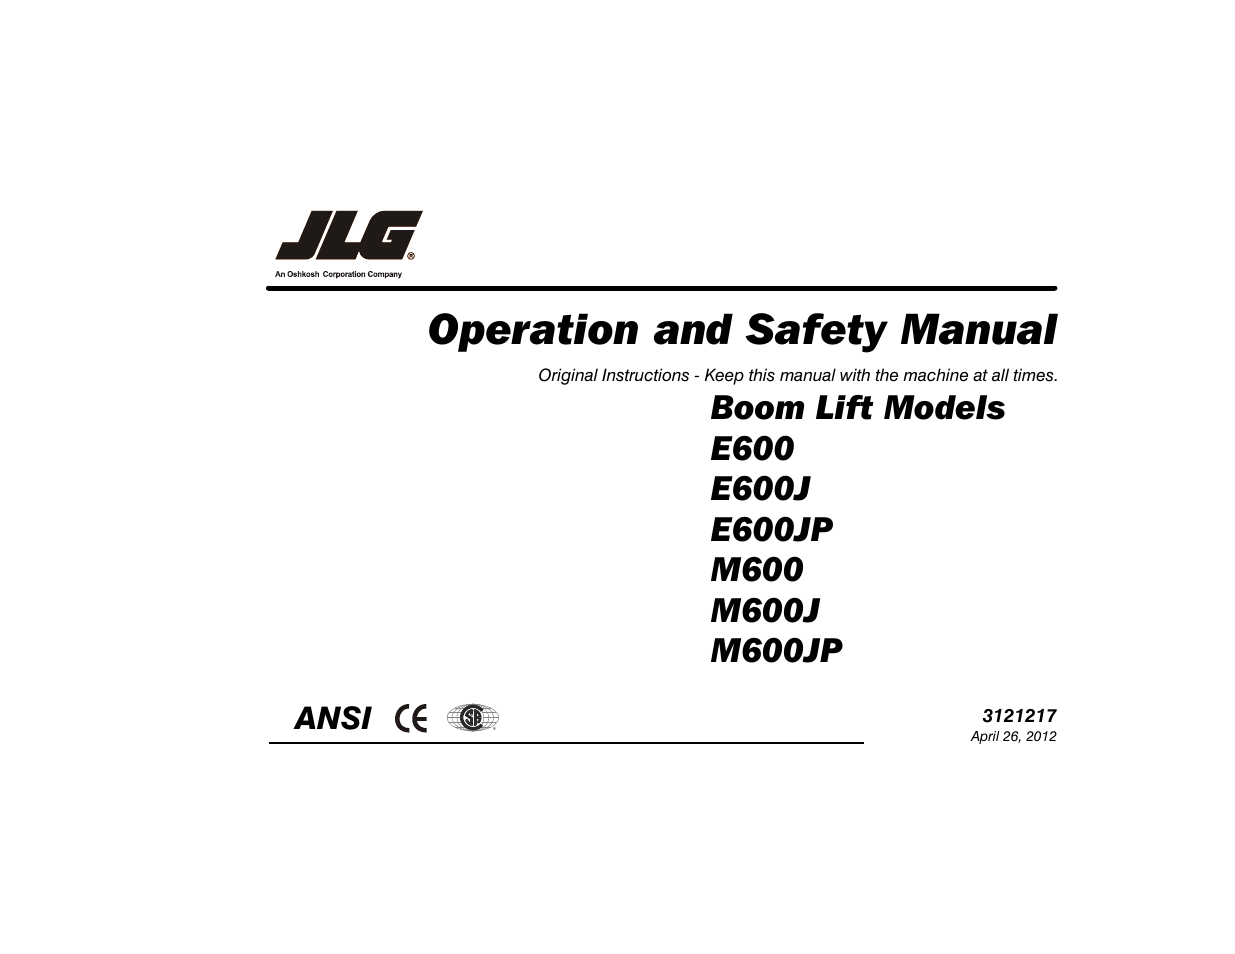 Jlg scissor lift manual pdf on l2350 kubota tractor wiring diagrams, lull wiring diagrams, terex wiring diagrams, john deere wiring diagrams, manitou wiring diagrams, basic electrical wiring diagrams, grove electrical control cable, sailing ship diagrams, skytrak wiring diagrams, grove lifts wiring schematics, cat forklift wiring diagrams, jlg wiring diagrams, grove mz35 boom lift,